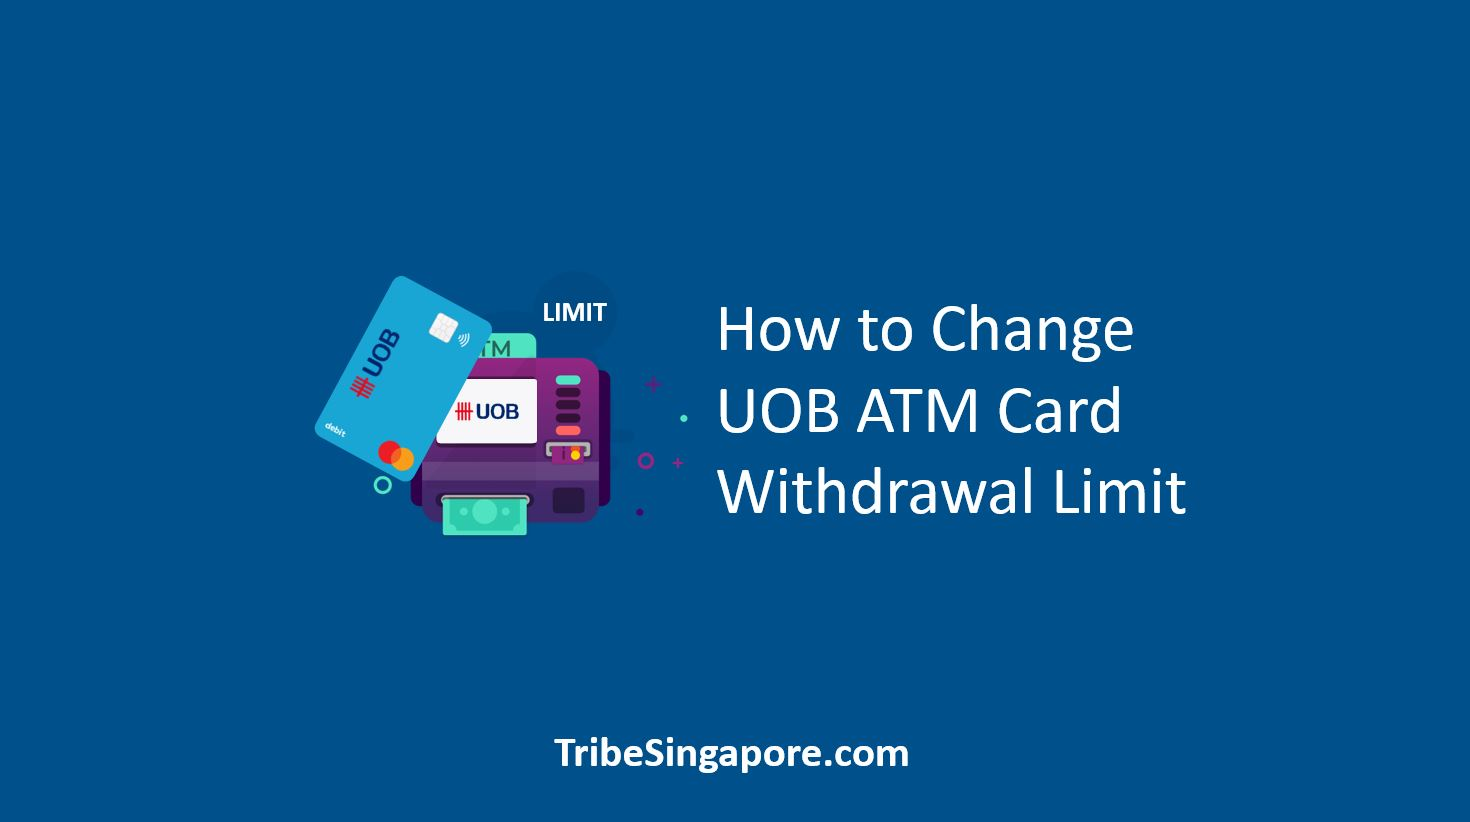 How to Change UOB ATM Card Withdrawal Limit